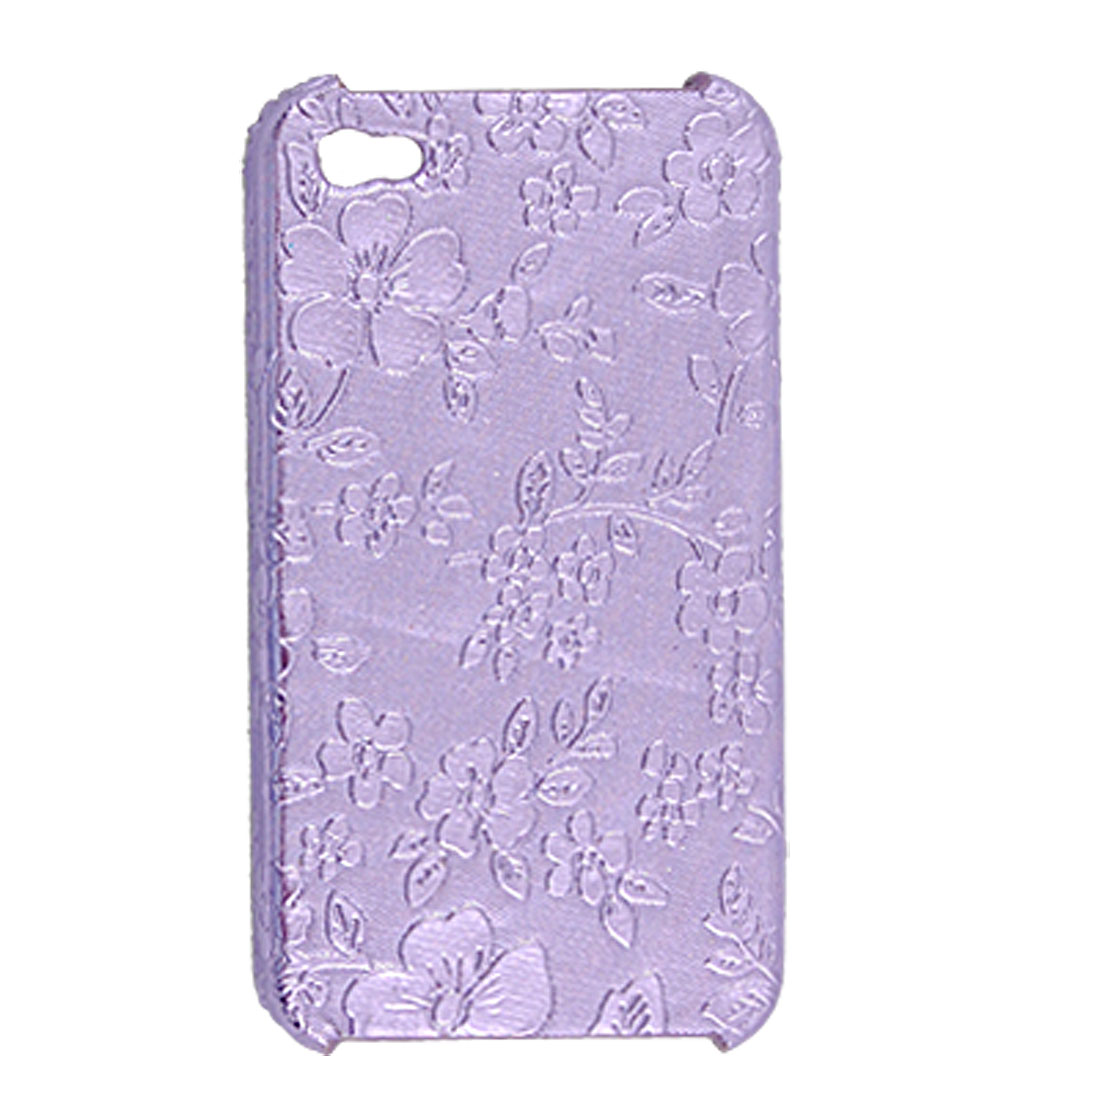 Purple Hard Flower Case Plastic Cover for iPhone 4 4G